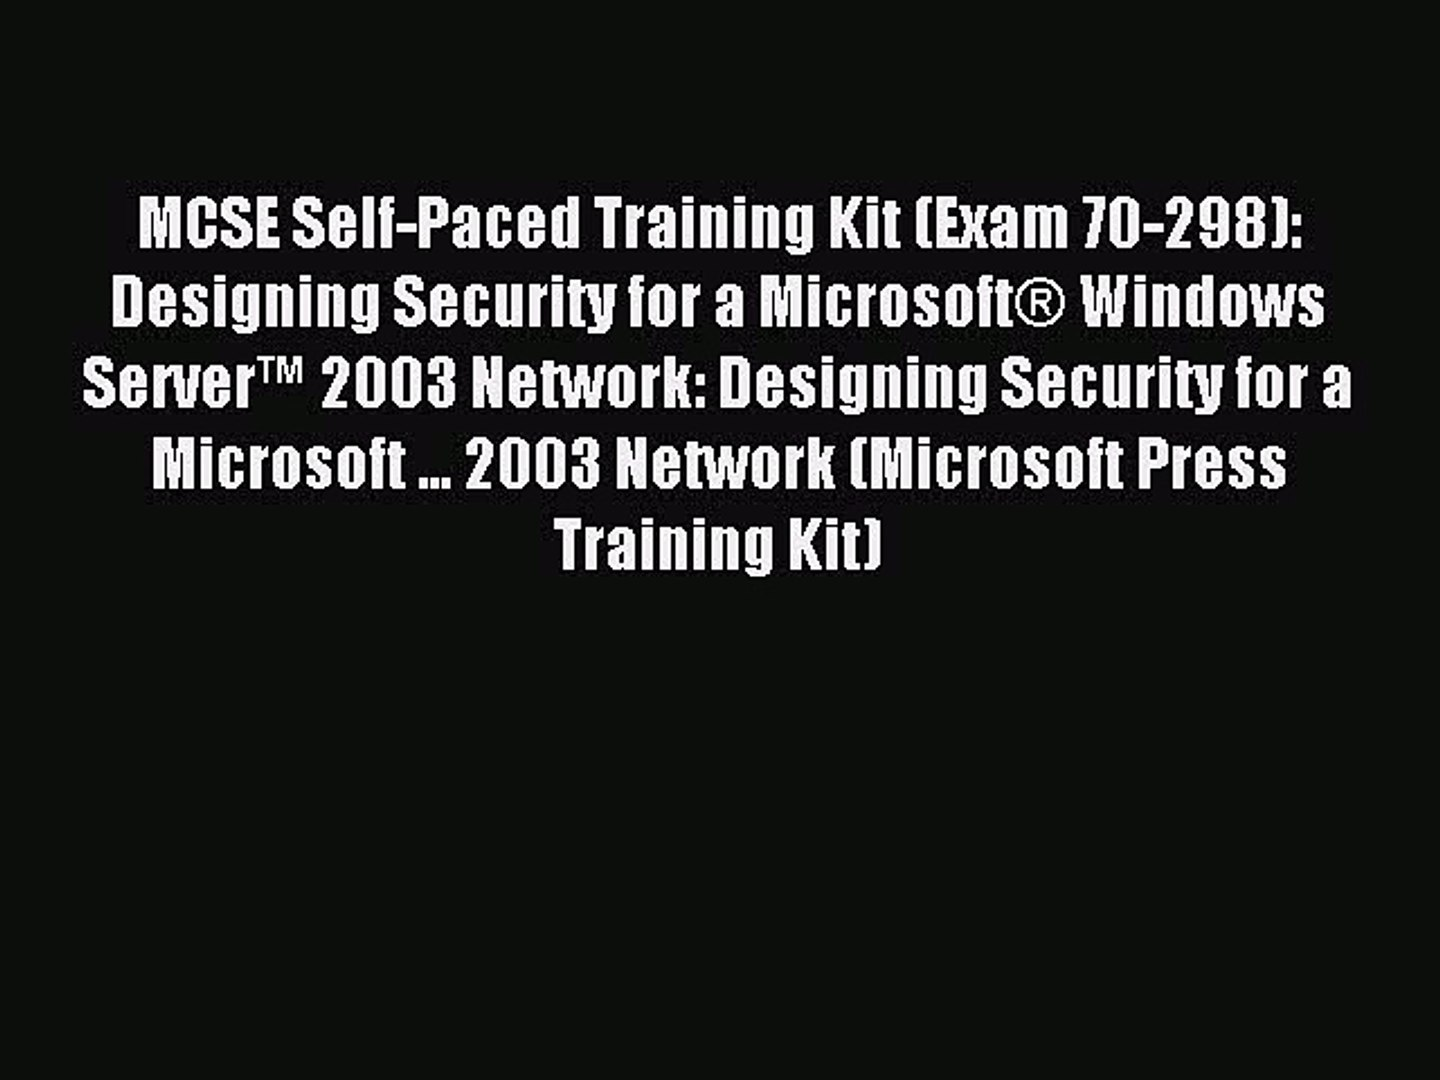 Read MCSE Self-Paced Training Kit (Exam 70-298): Designing Security for a Microsoft® Windows